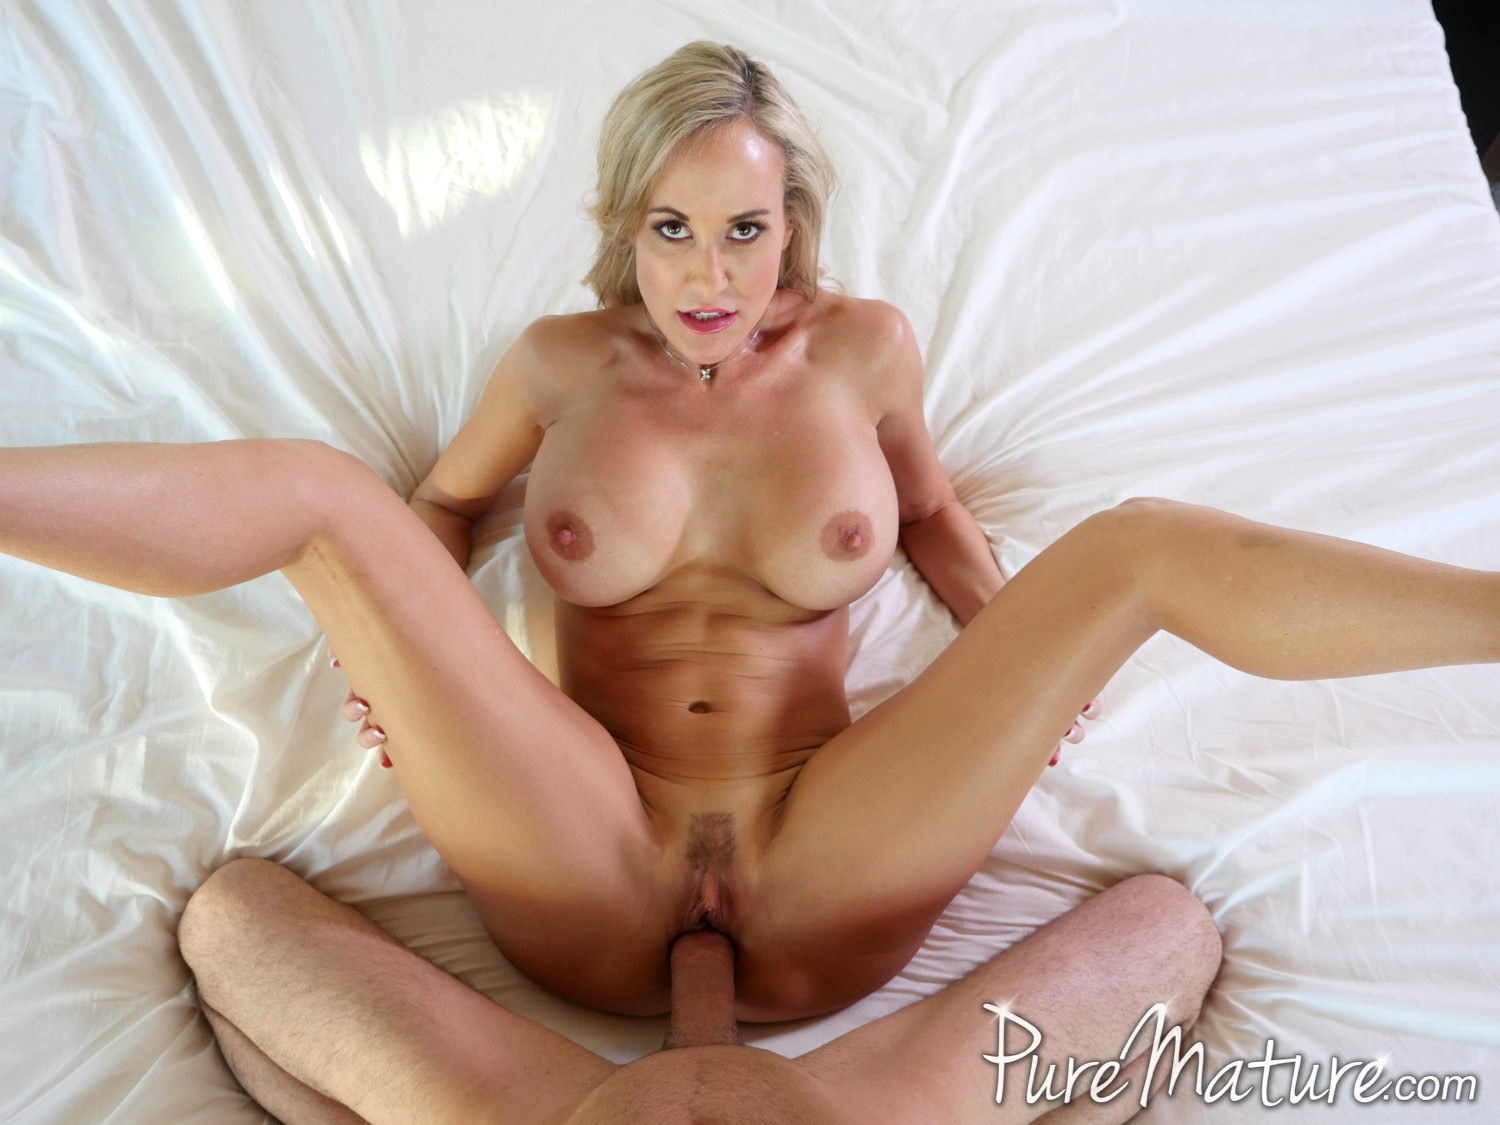 Remarkable, Porn mature pussy pics jpg